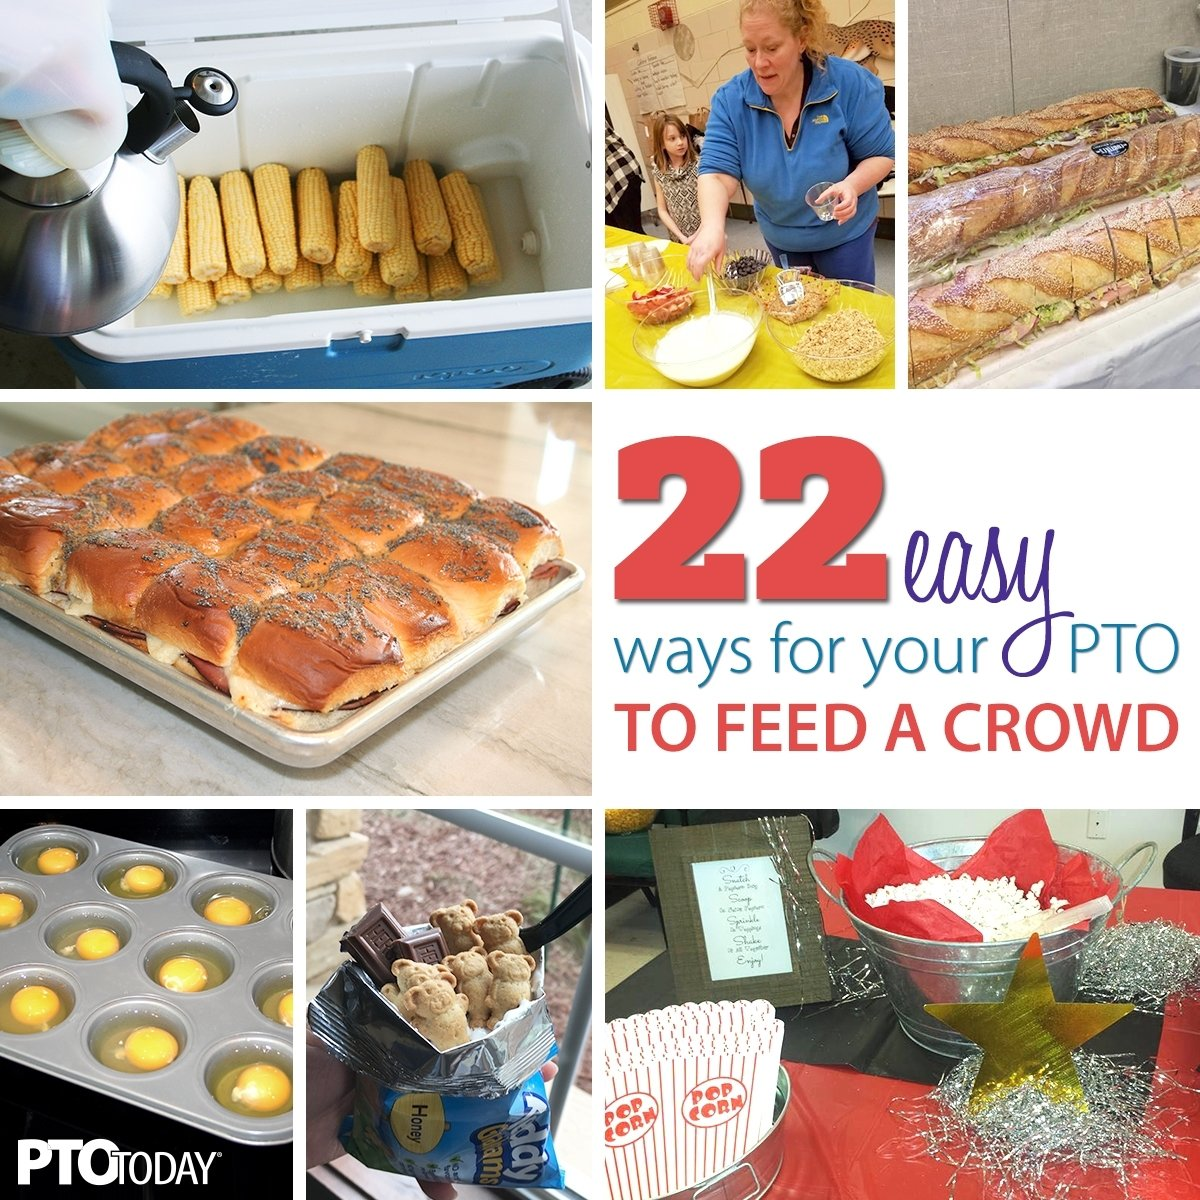 10 Best Breakfast Ideas For A Large Group 22 easy meal ideas for large groups pto today 9 2020